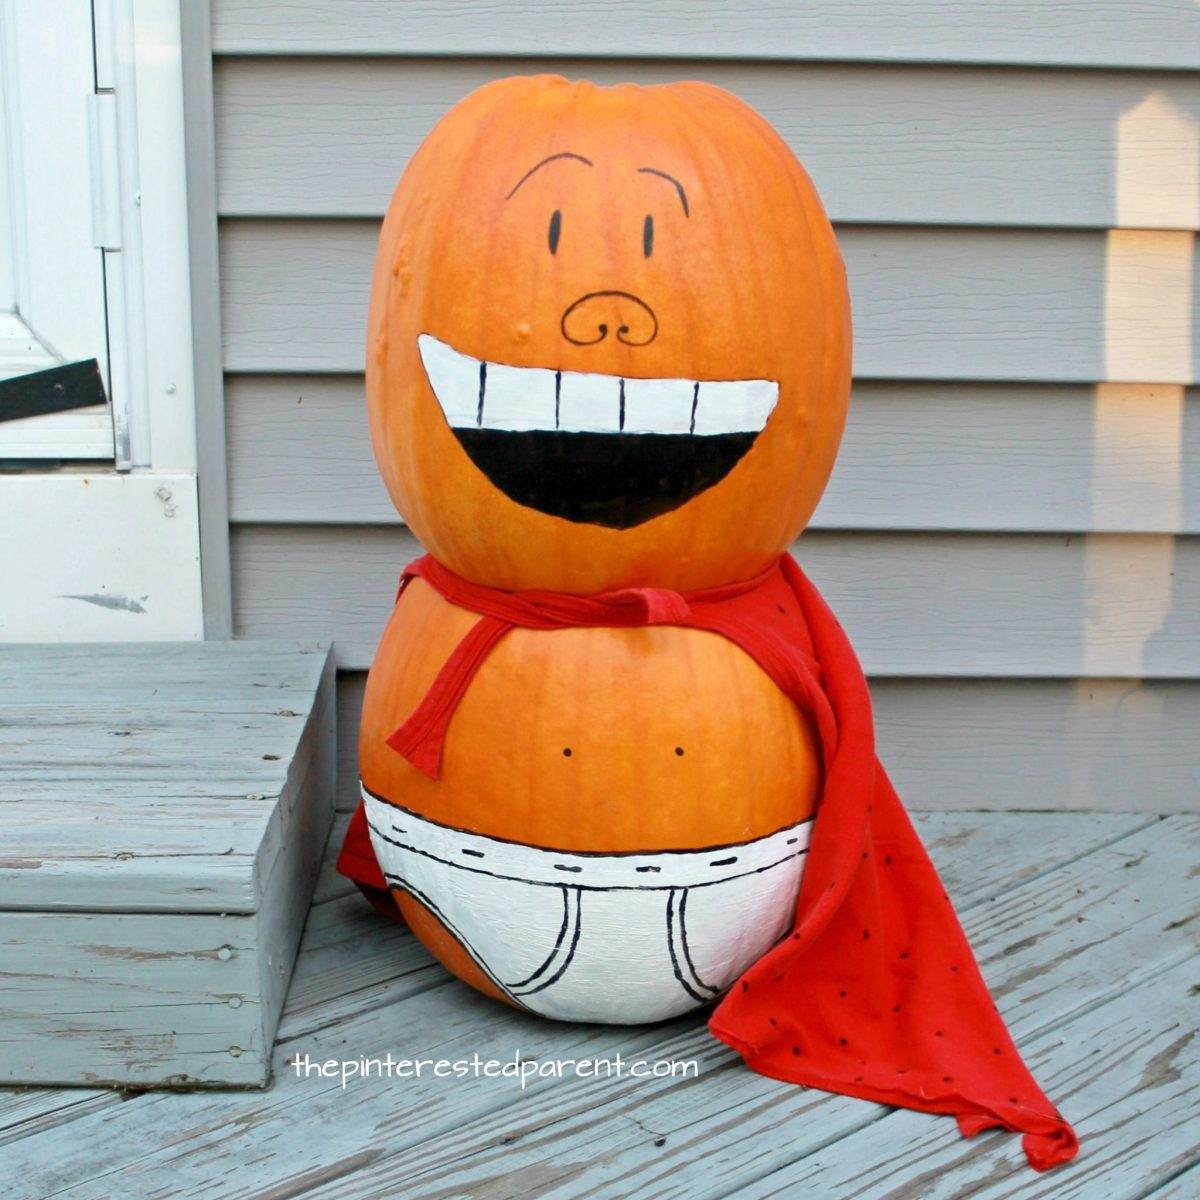 Painted Captain Underpants Pumpkin